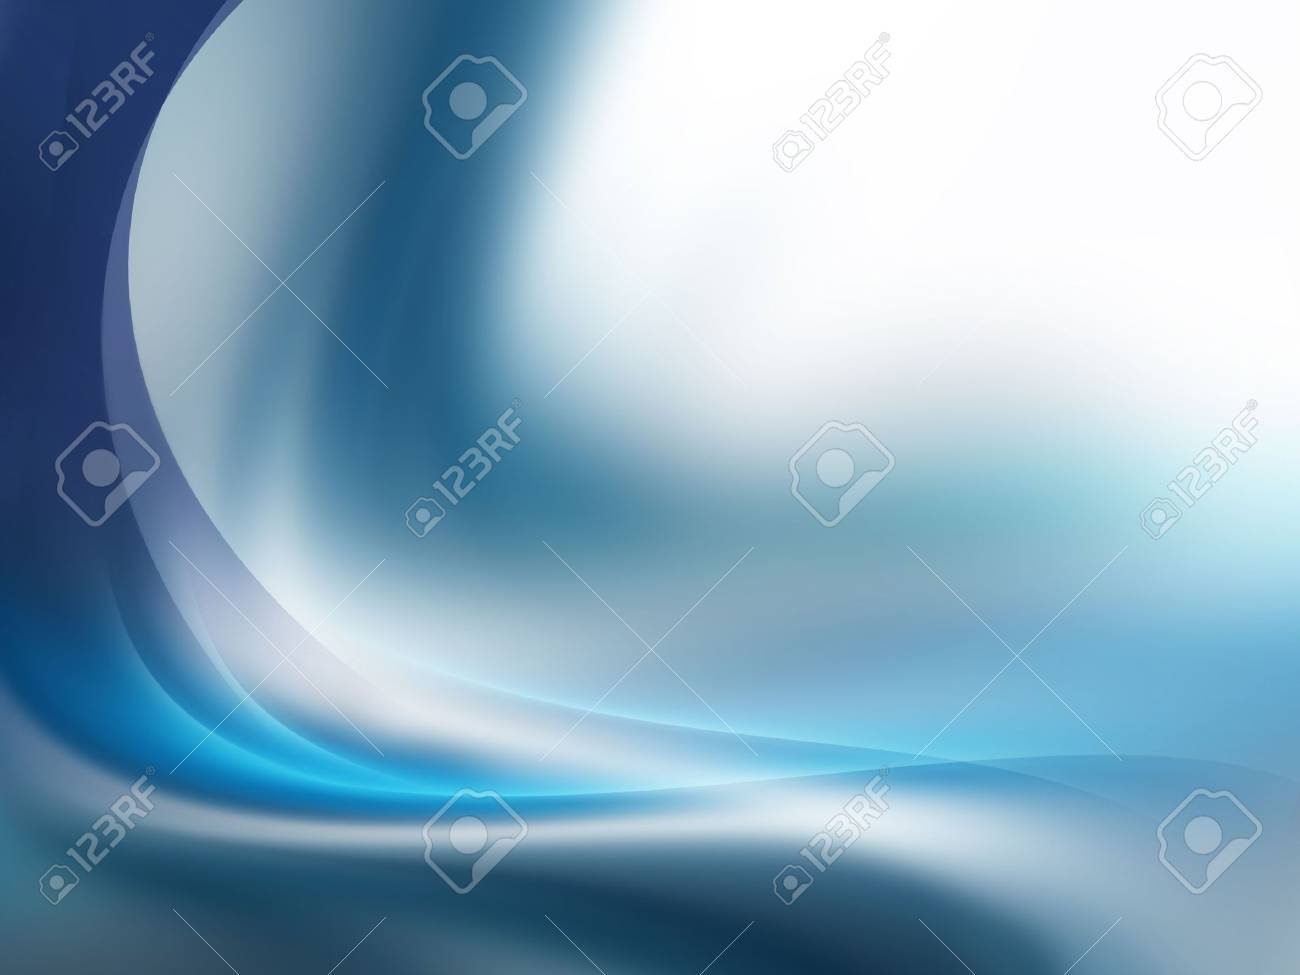 beautiful modern background with abstract smooth lines Stock Photo - 7593952